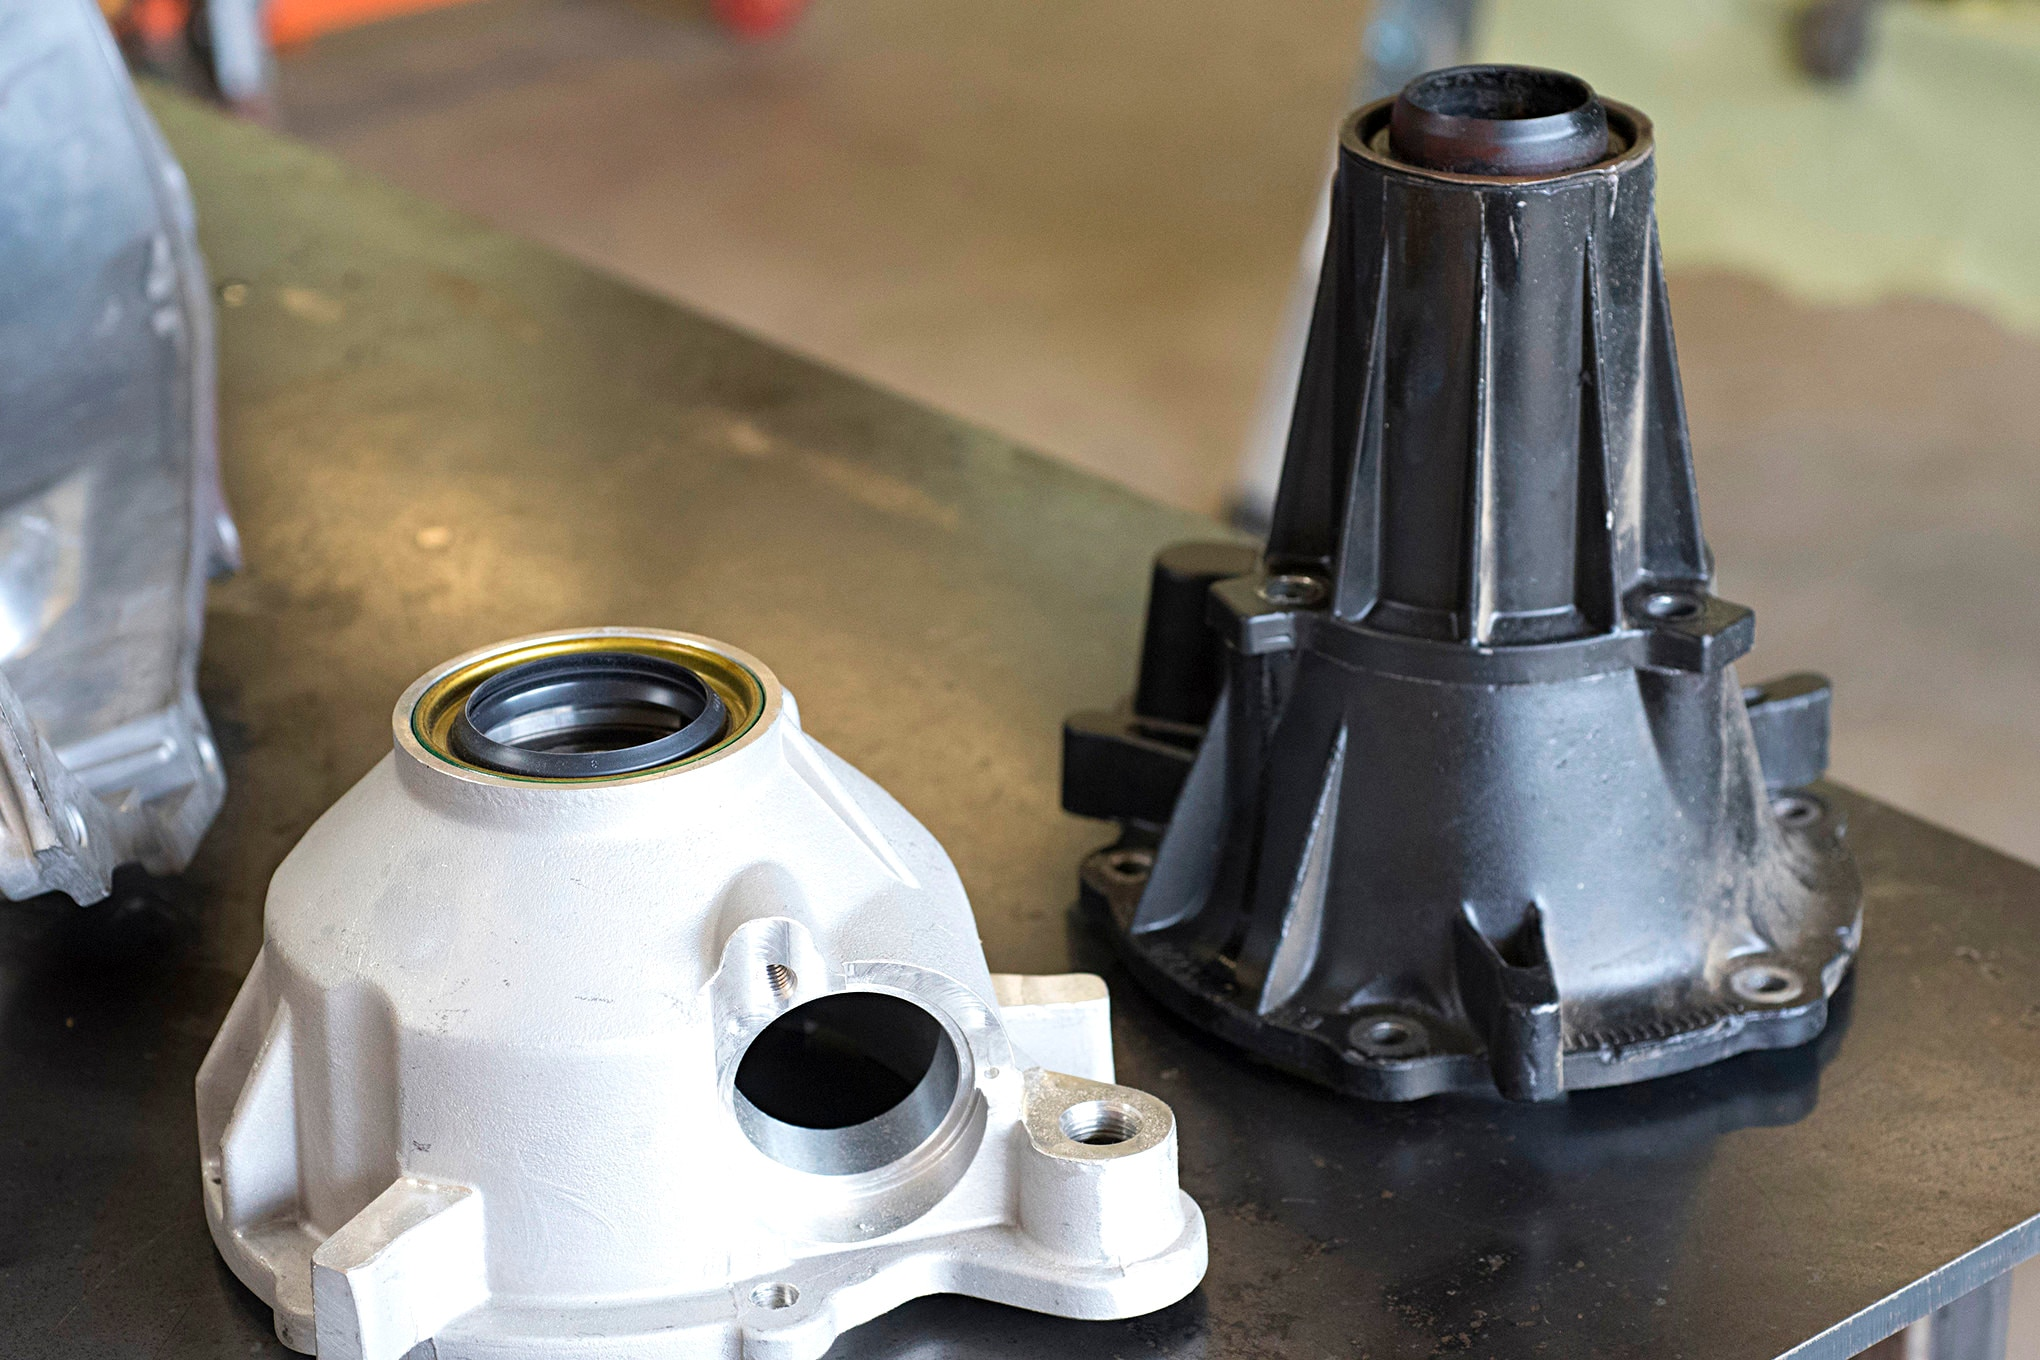 The slip-yoke eliminator kit uses of a much shorter output shaft housing (left) than OEM, which means a longer driveshaft can be used along with a 1310 U-joint. It also removes the oil seal leaking issue common to Jeeps.